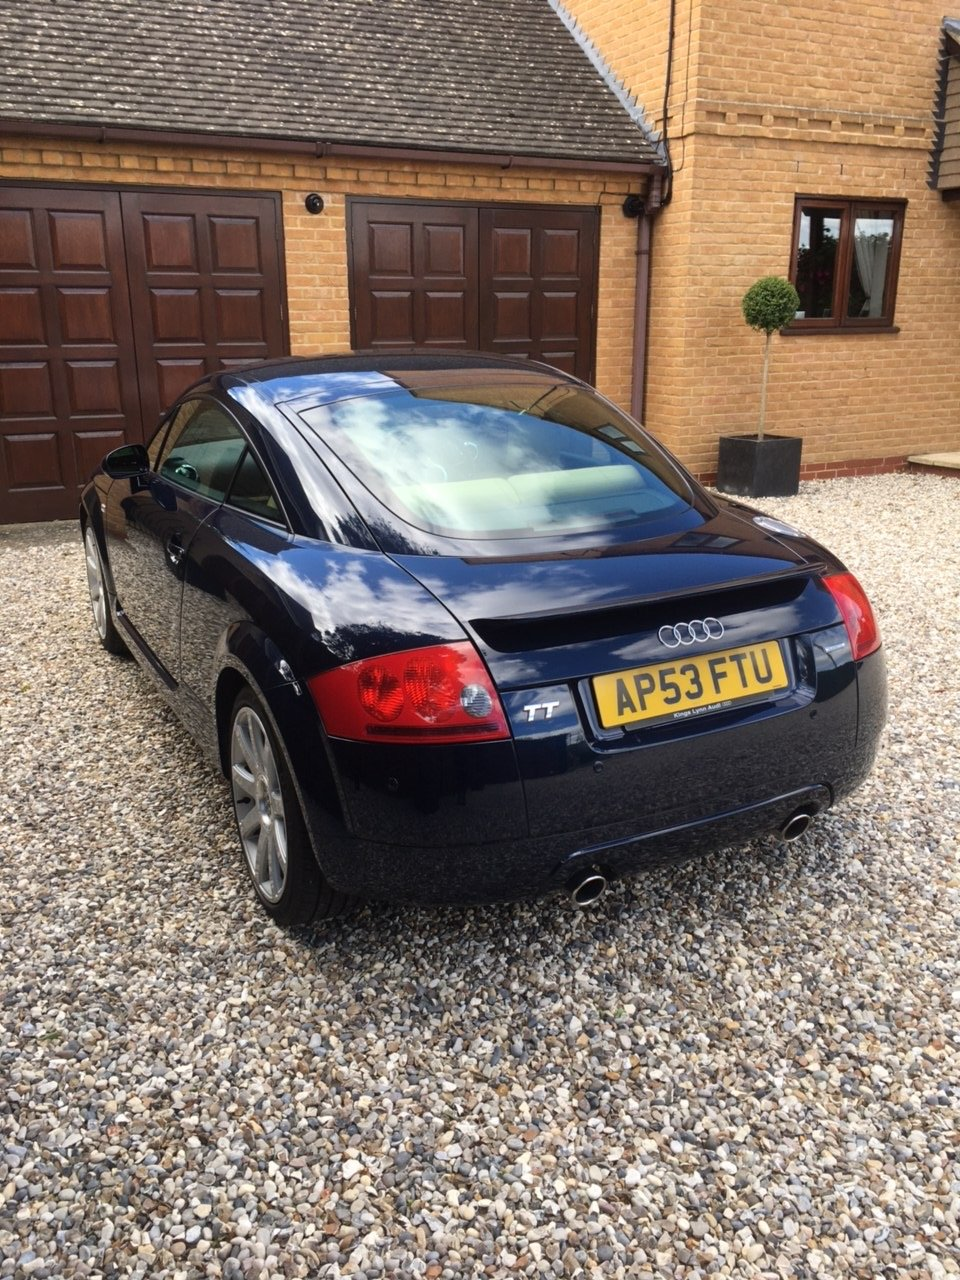 2004 Audi TT As new - dream car For Sale (picture 6 of 6)